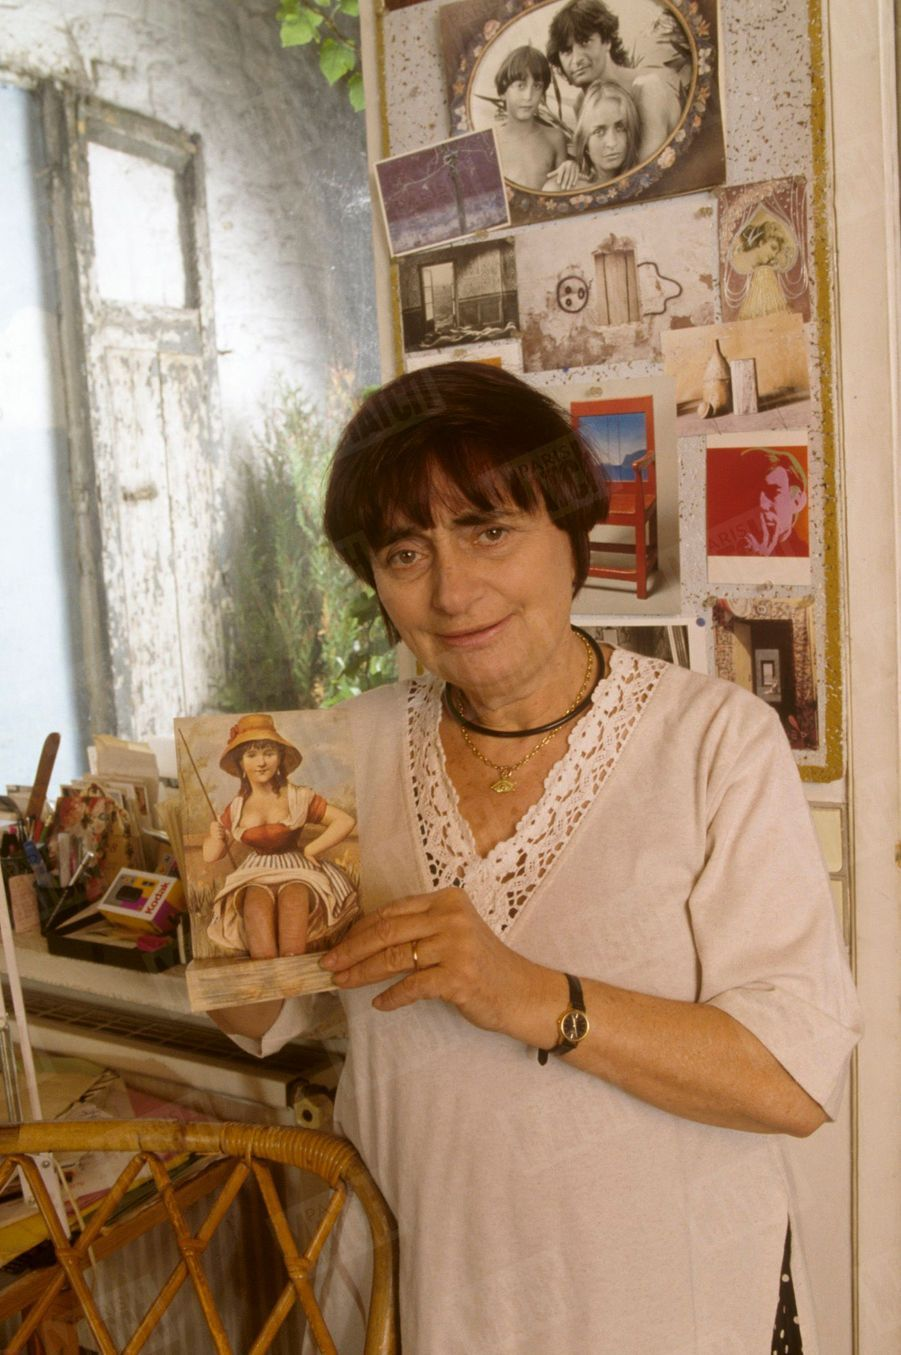 Agnès Varda devant sa collection de cartes postales insolites.